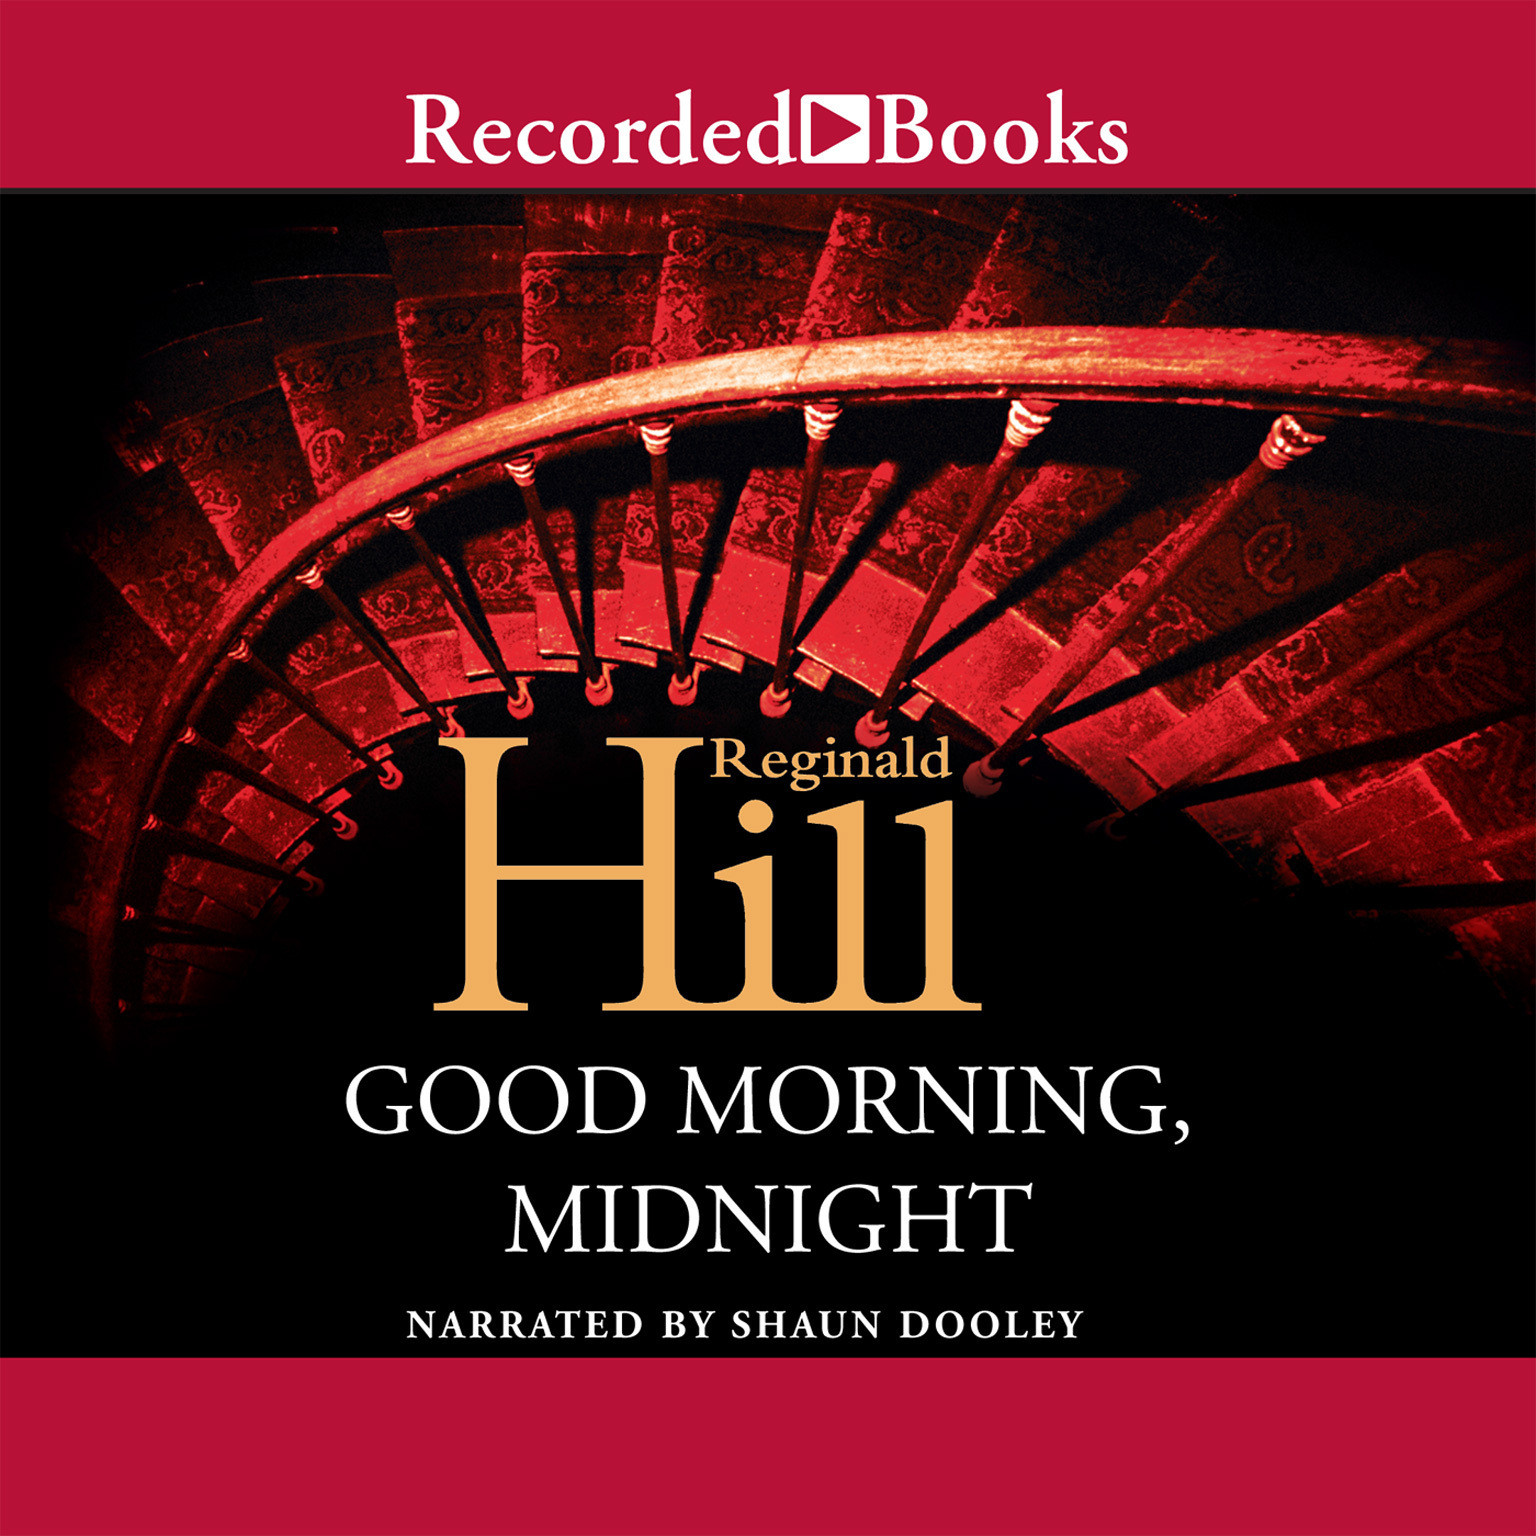 Printable Good Morning, Midnight Audiobook Cover Art